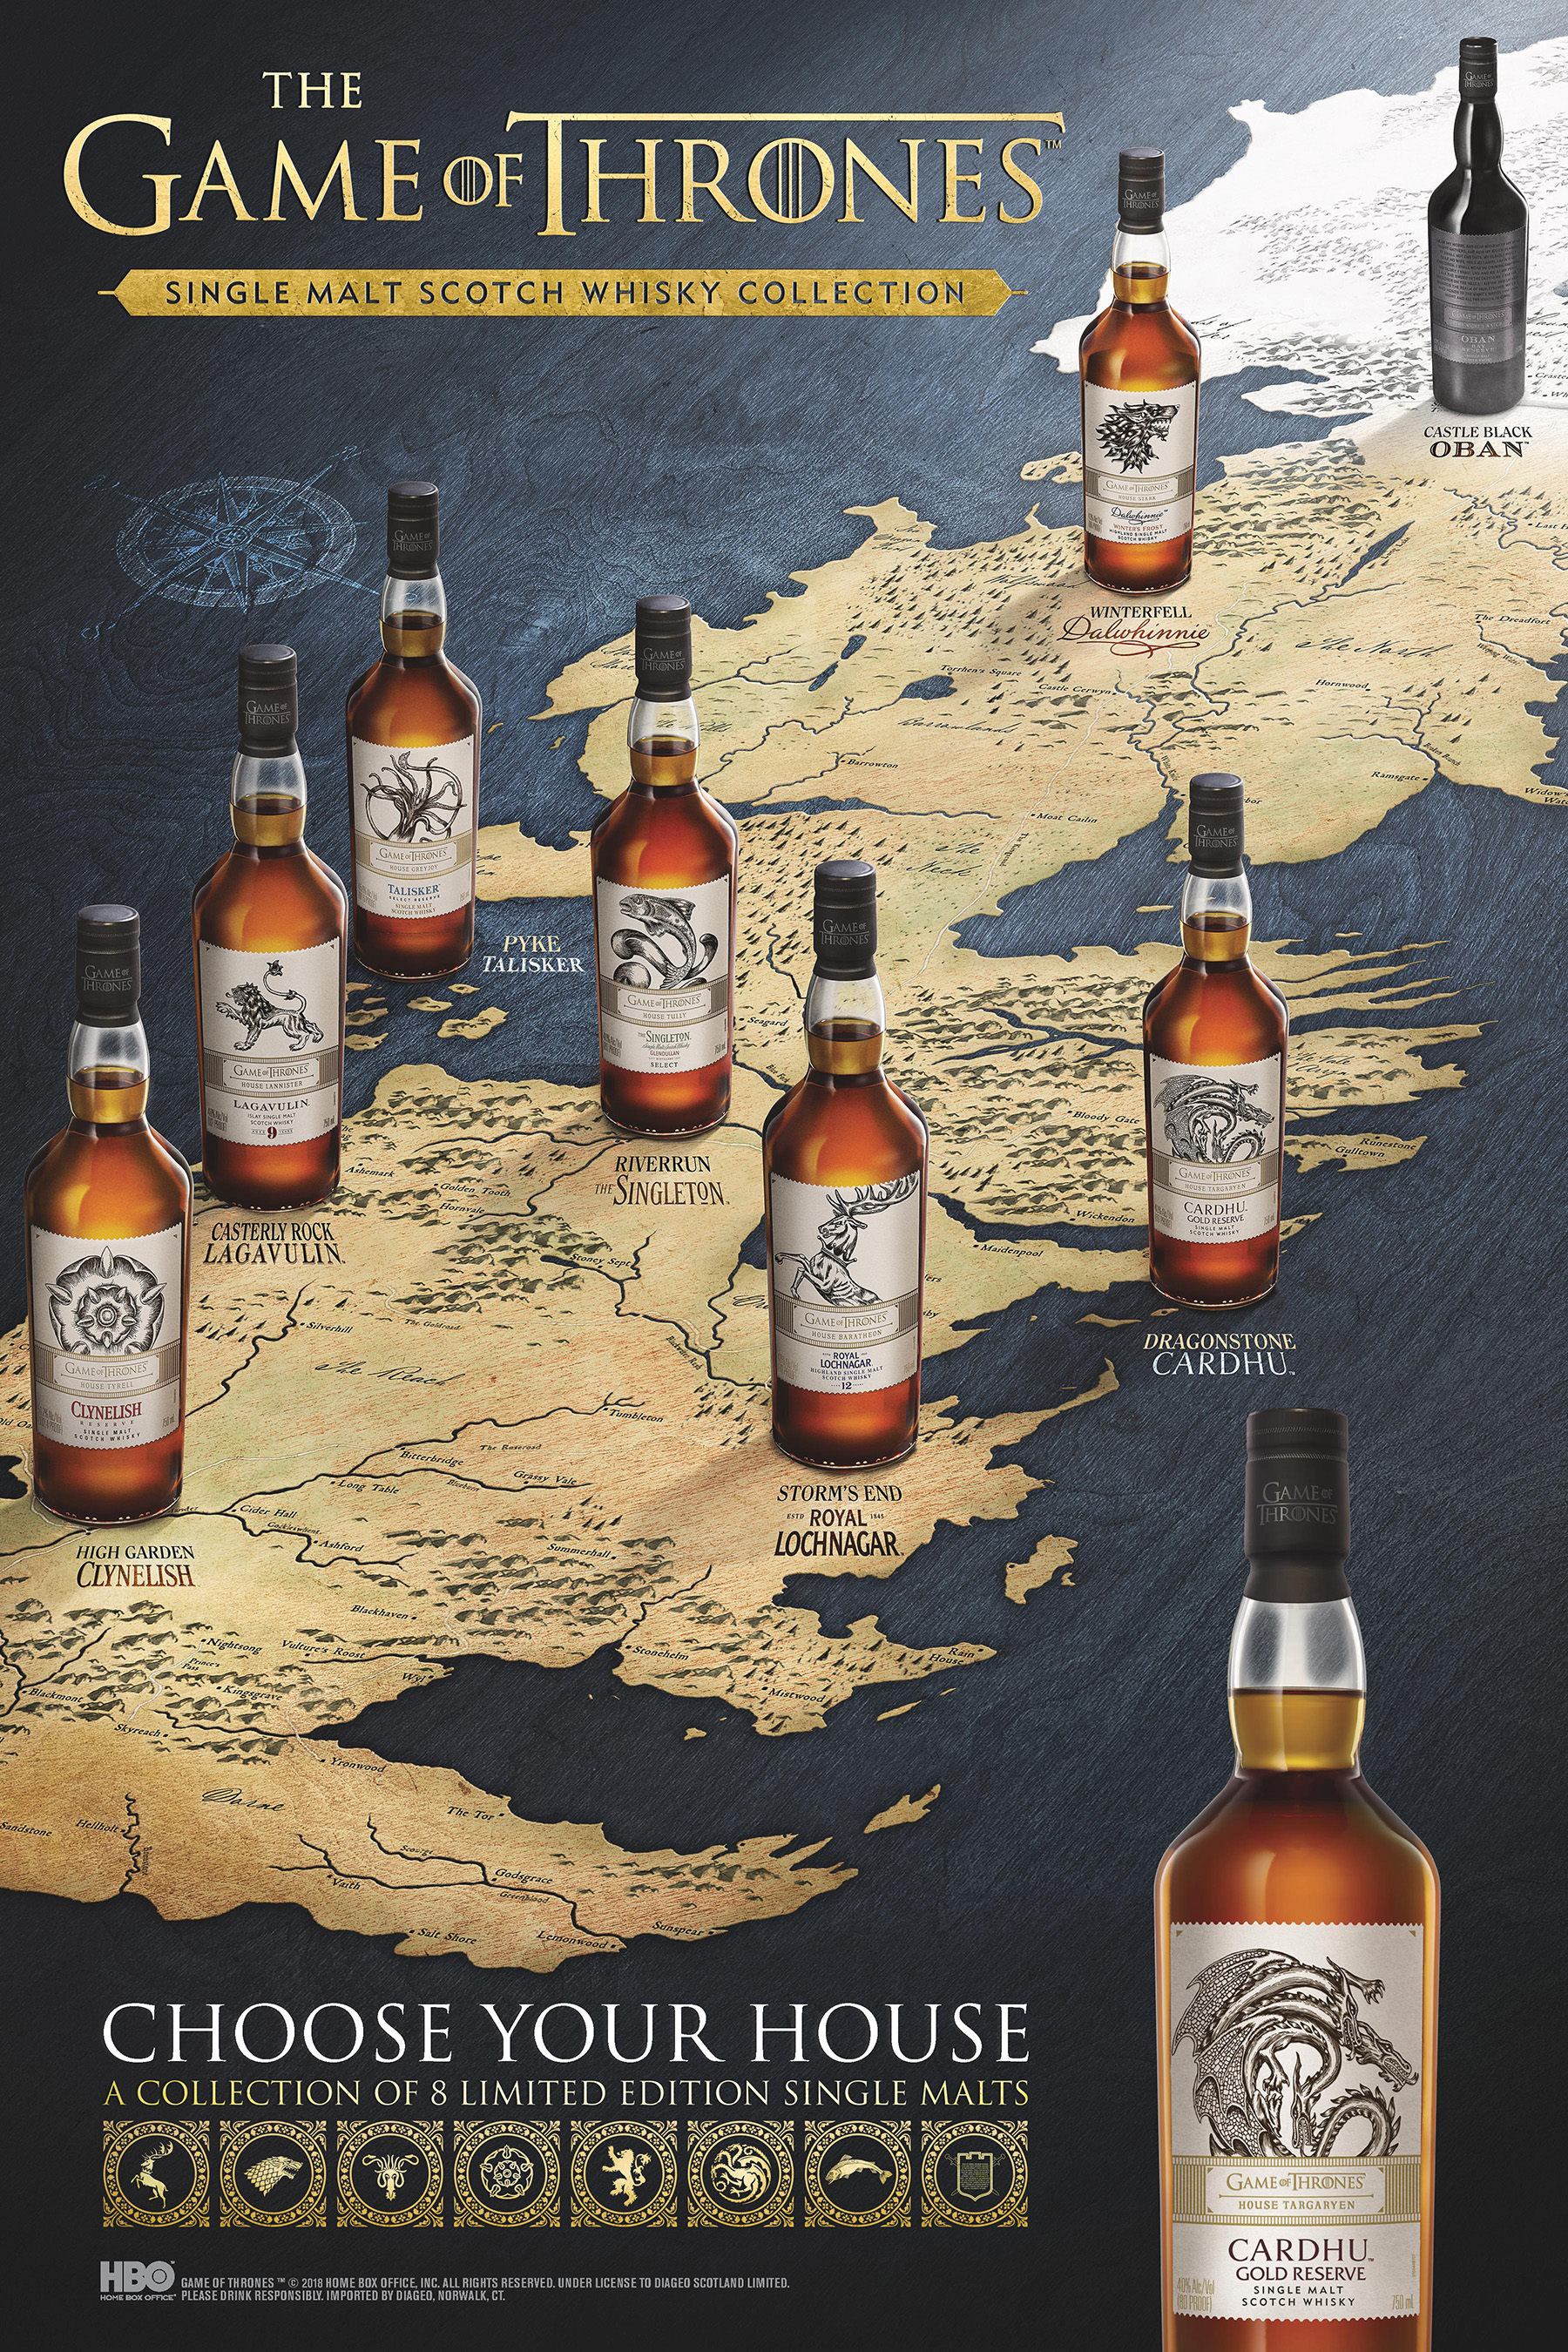 Each of these rare scotches is paired with one of the iconic Houses of Westeros, as well as the Night's Watch